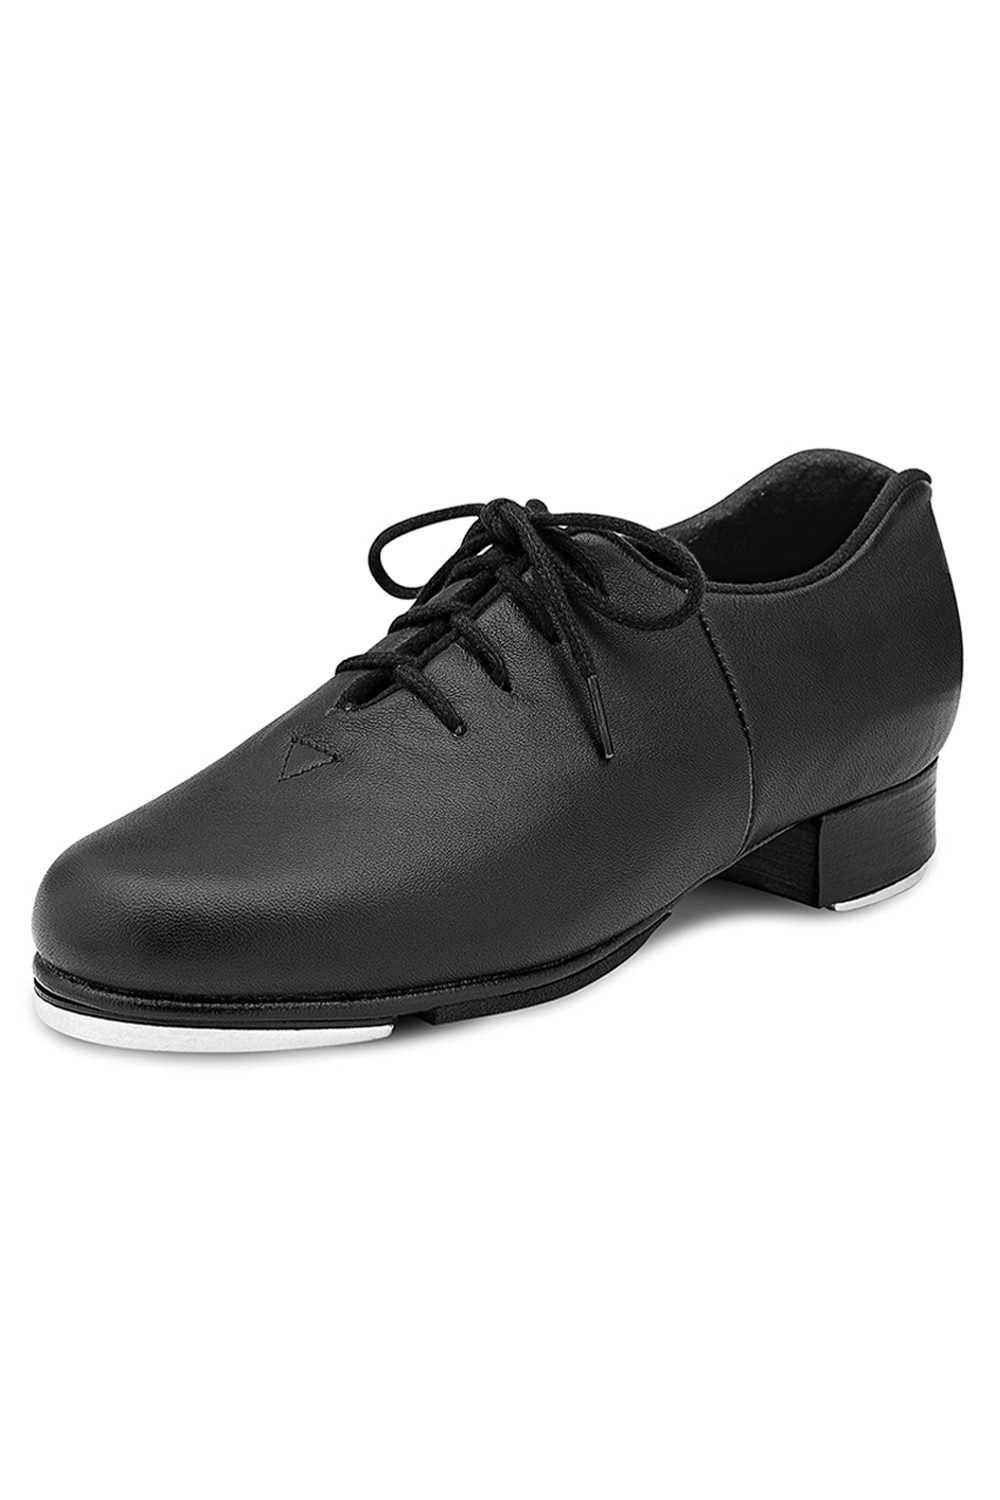 Audeo Jazz Steppschuh Women's Tap Shoes